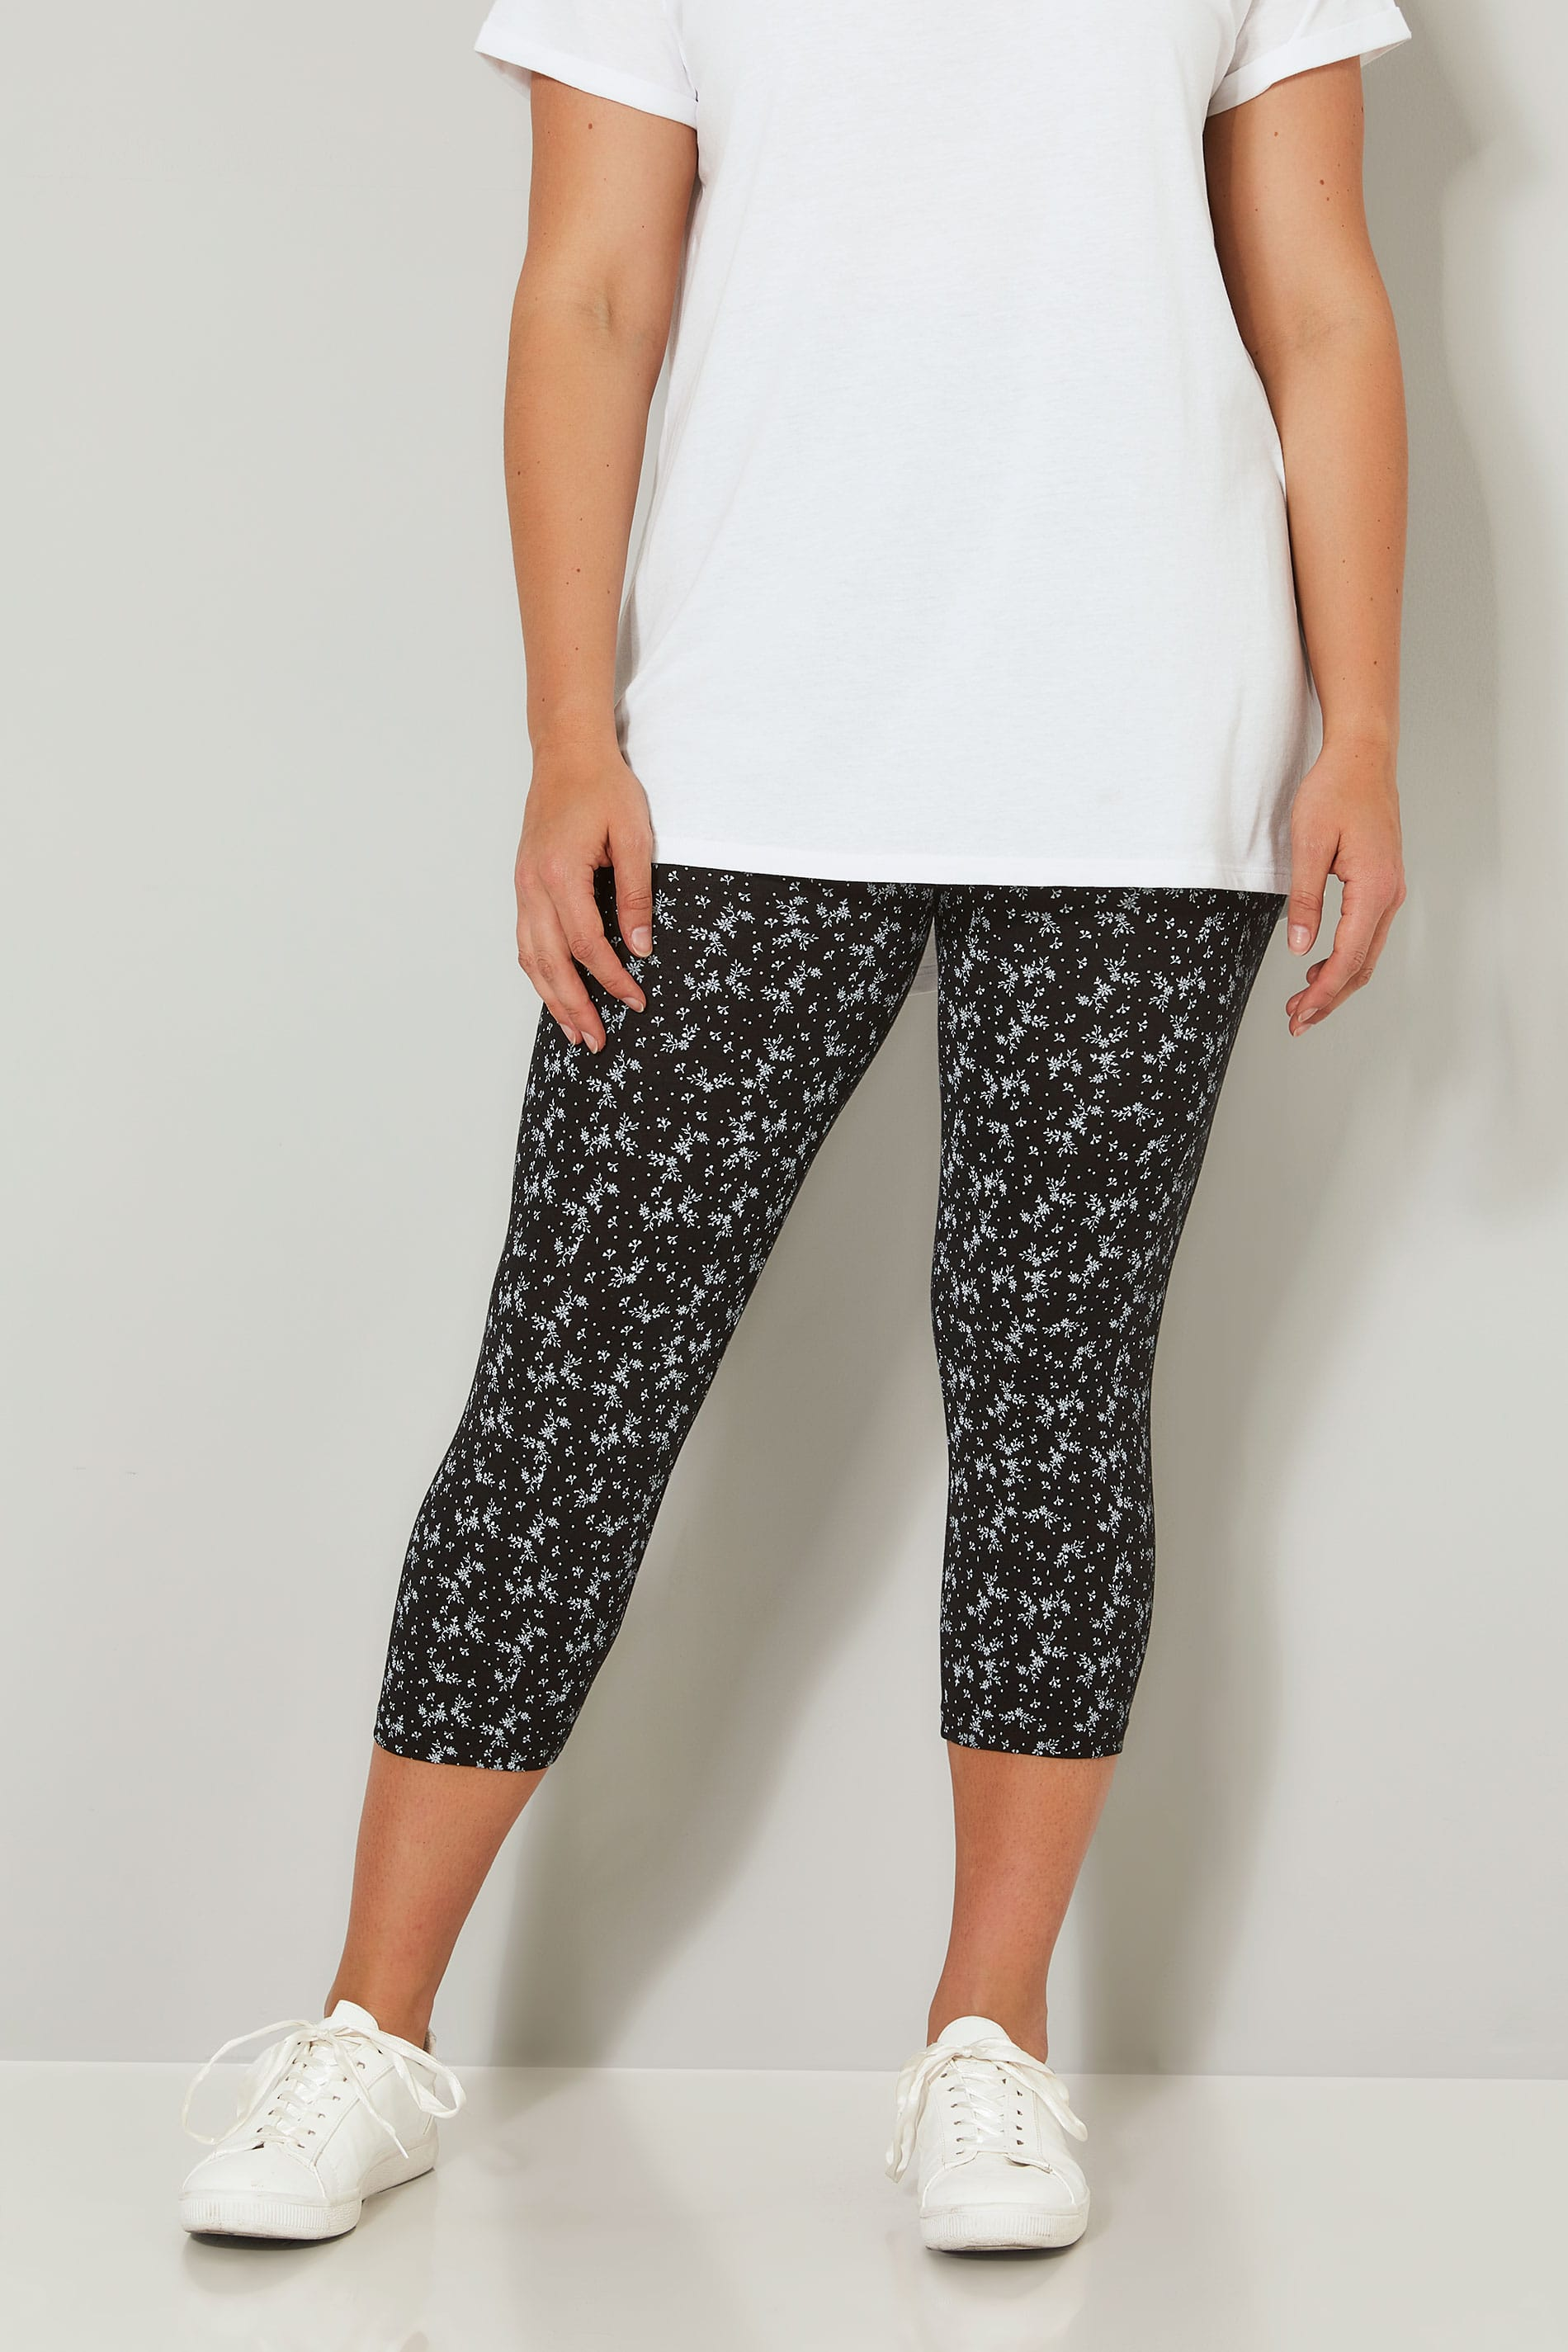 2 PACK Black Cotton Essential Printed Cropped Leggings ...